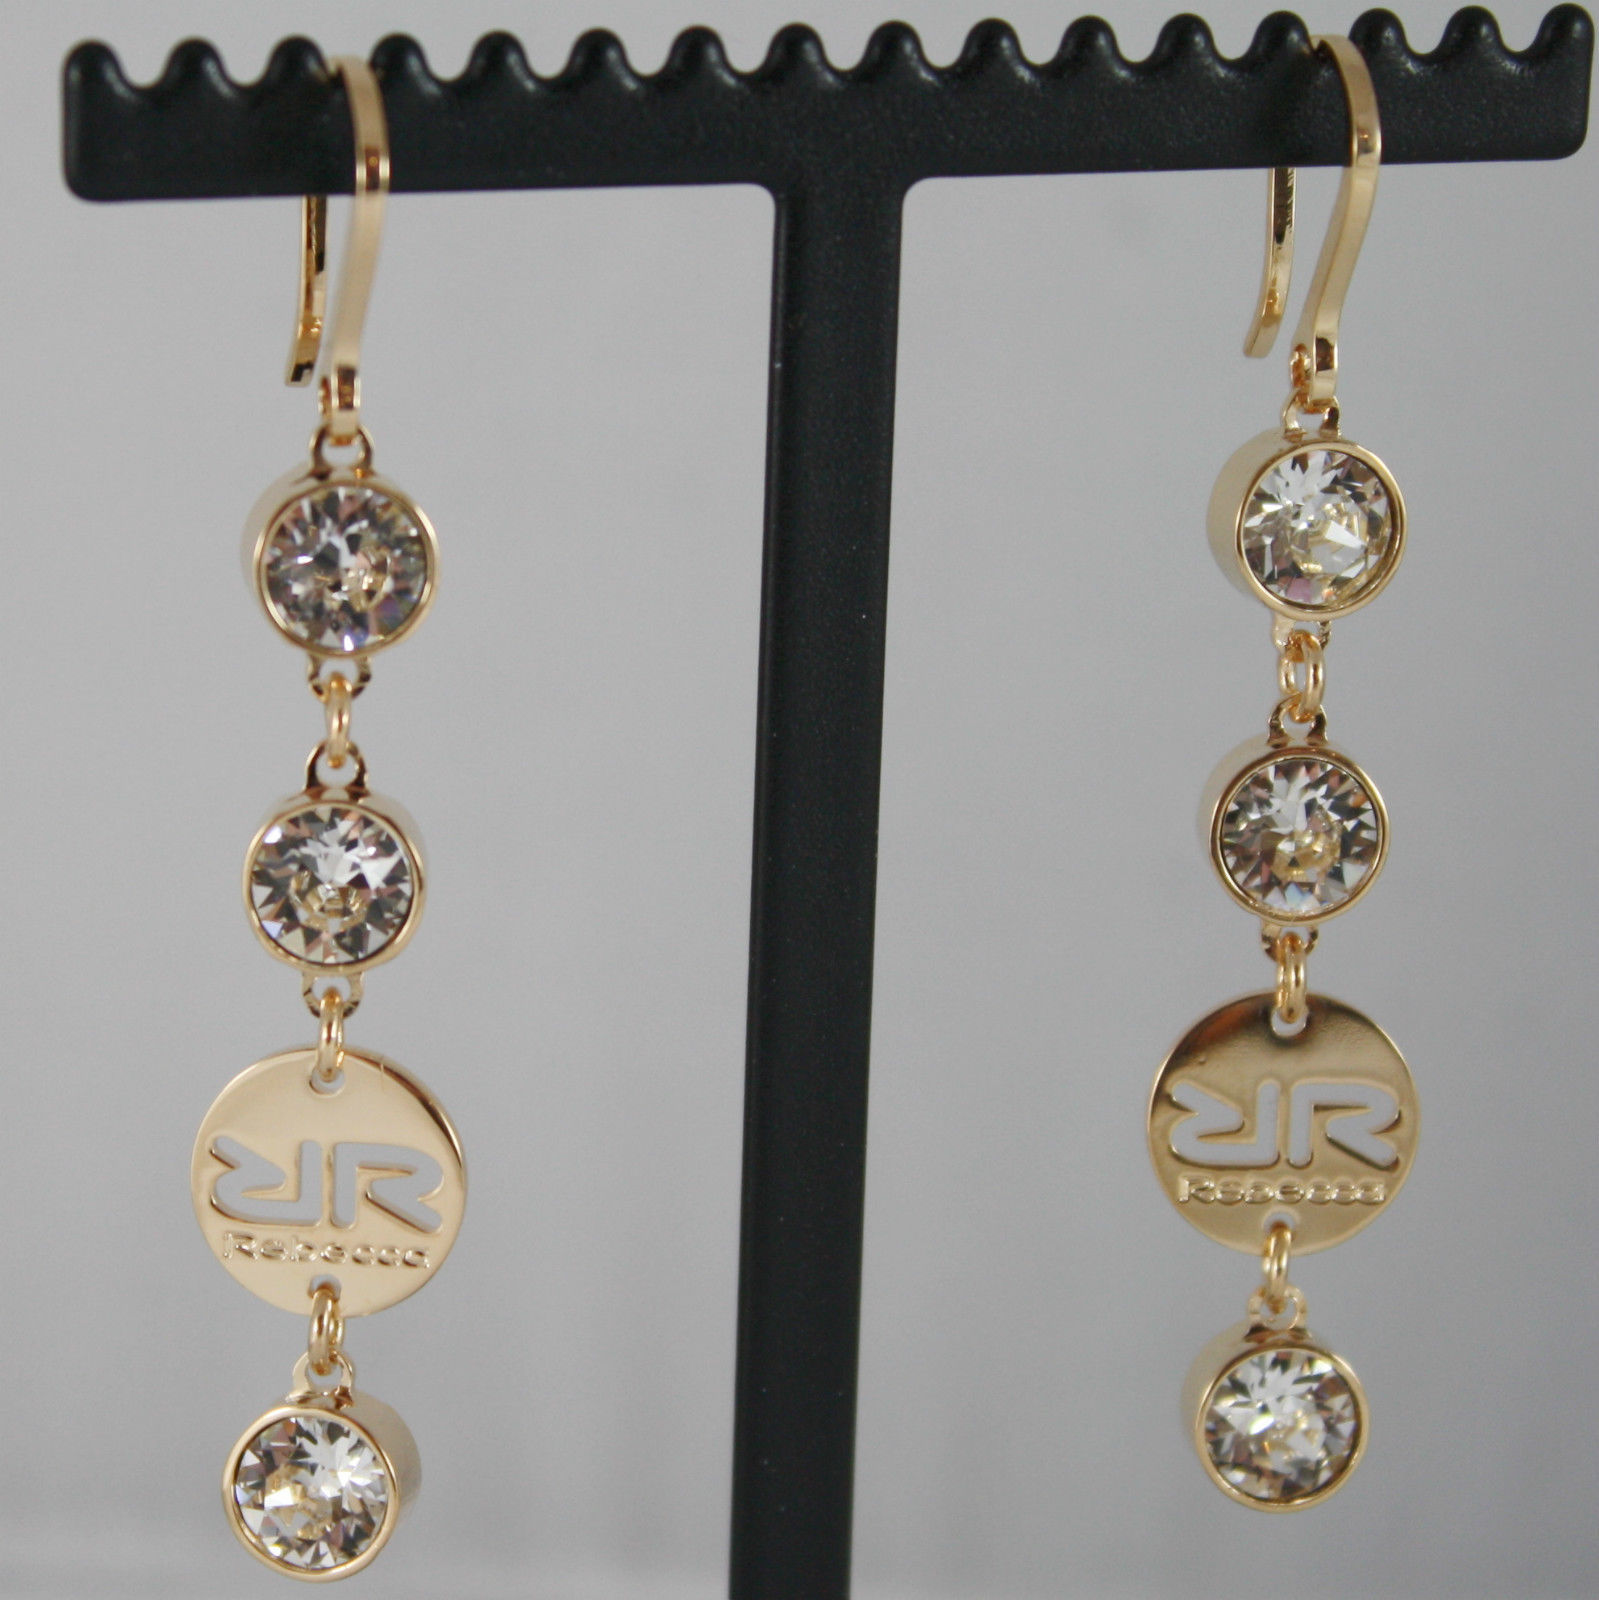 YELLOW BRONZE REBECCA PENDANT EARRINGS WITH WHITE CRYSTAL CT 6.00 MADE IN ITALY